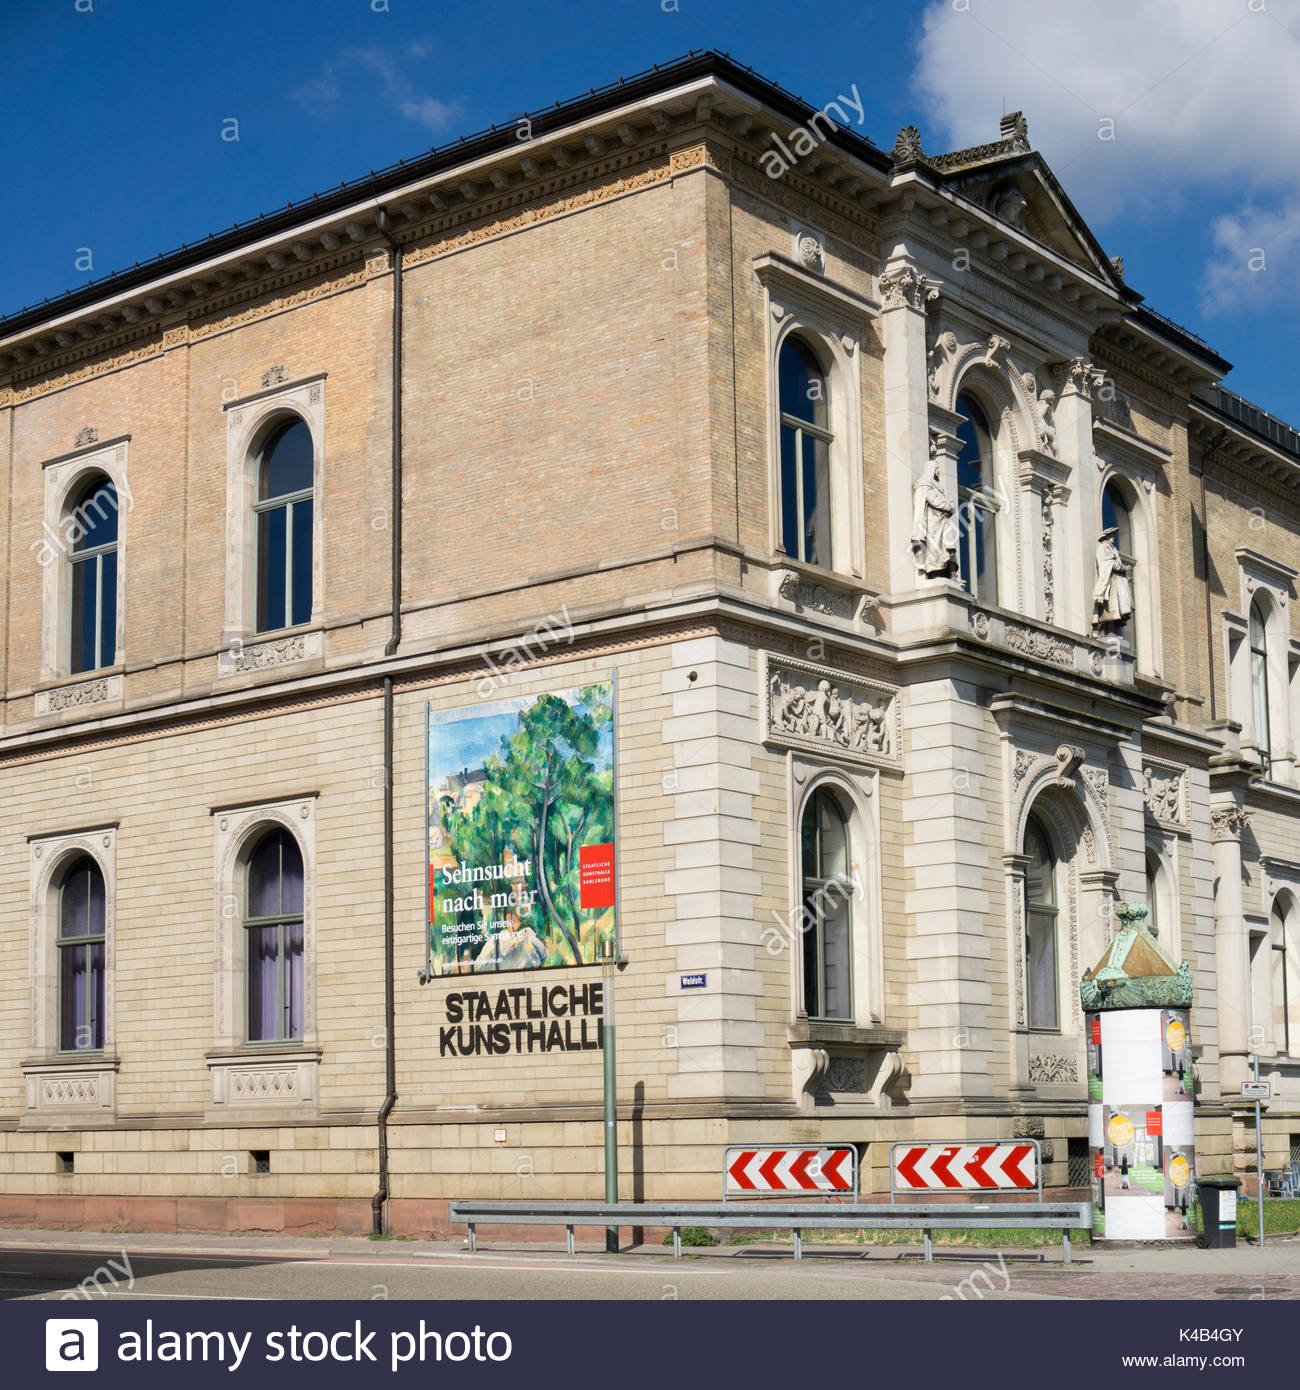 Staatliche Kunsthalle The Black Forest, Staatliche Kunsthalle Stock Photos & Staatliche Kunsthalle Stock ...